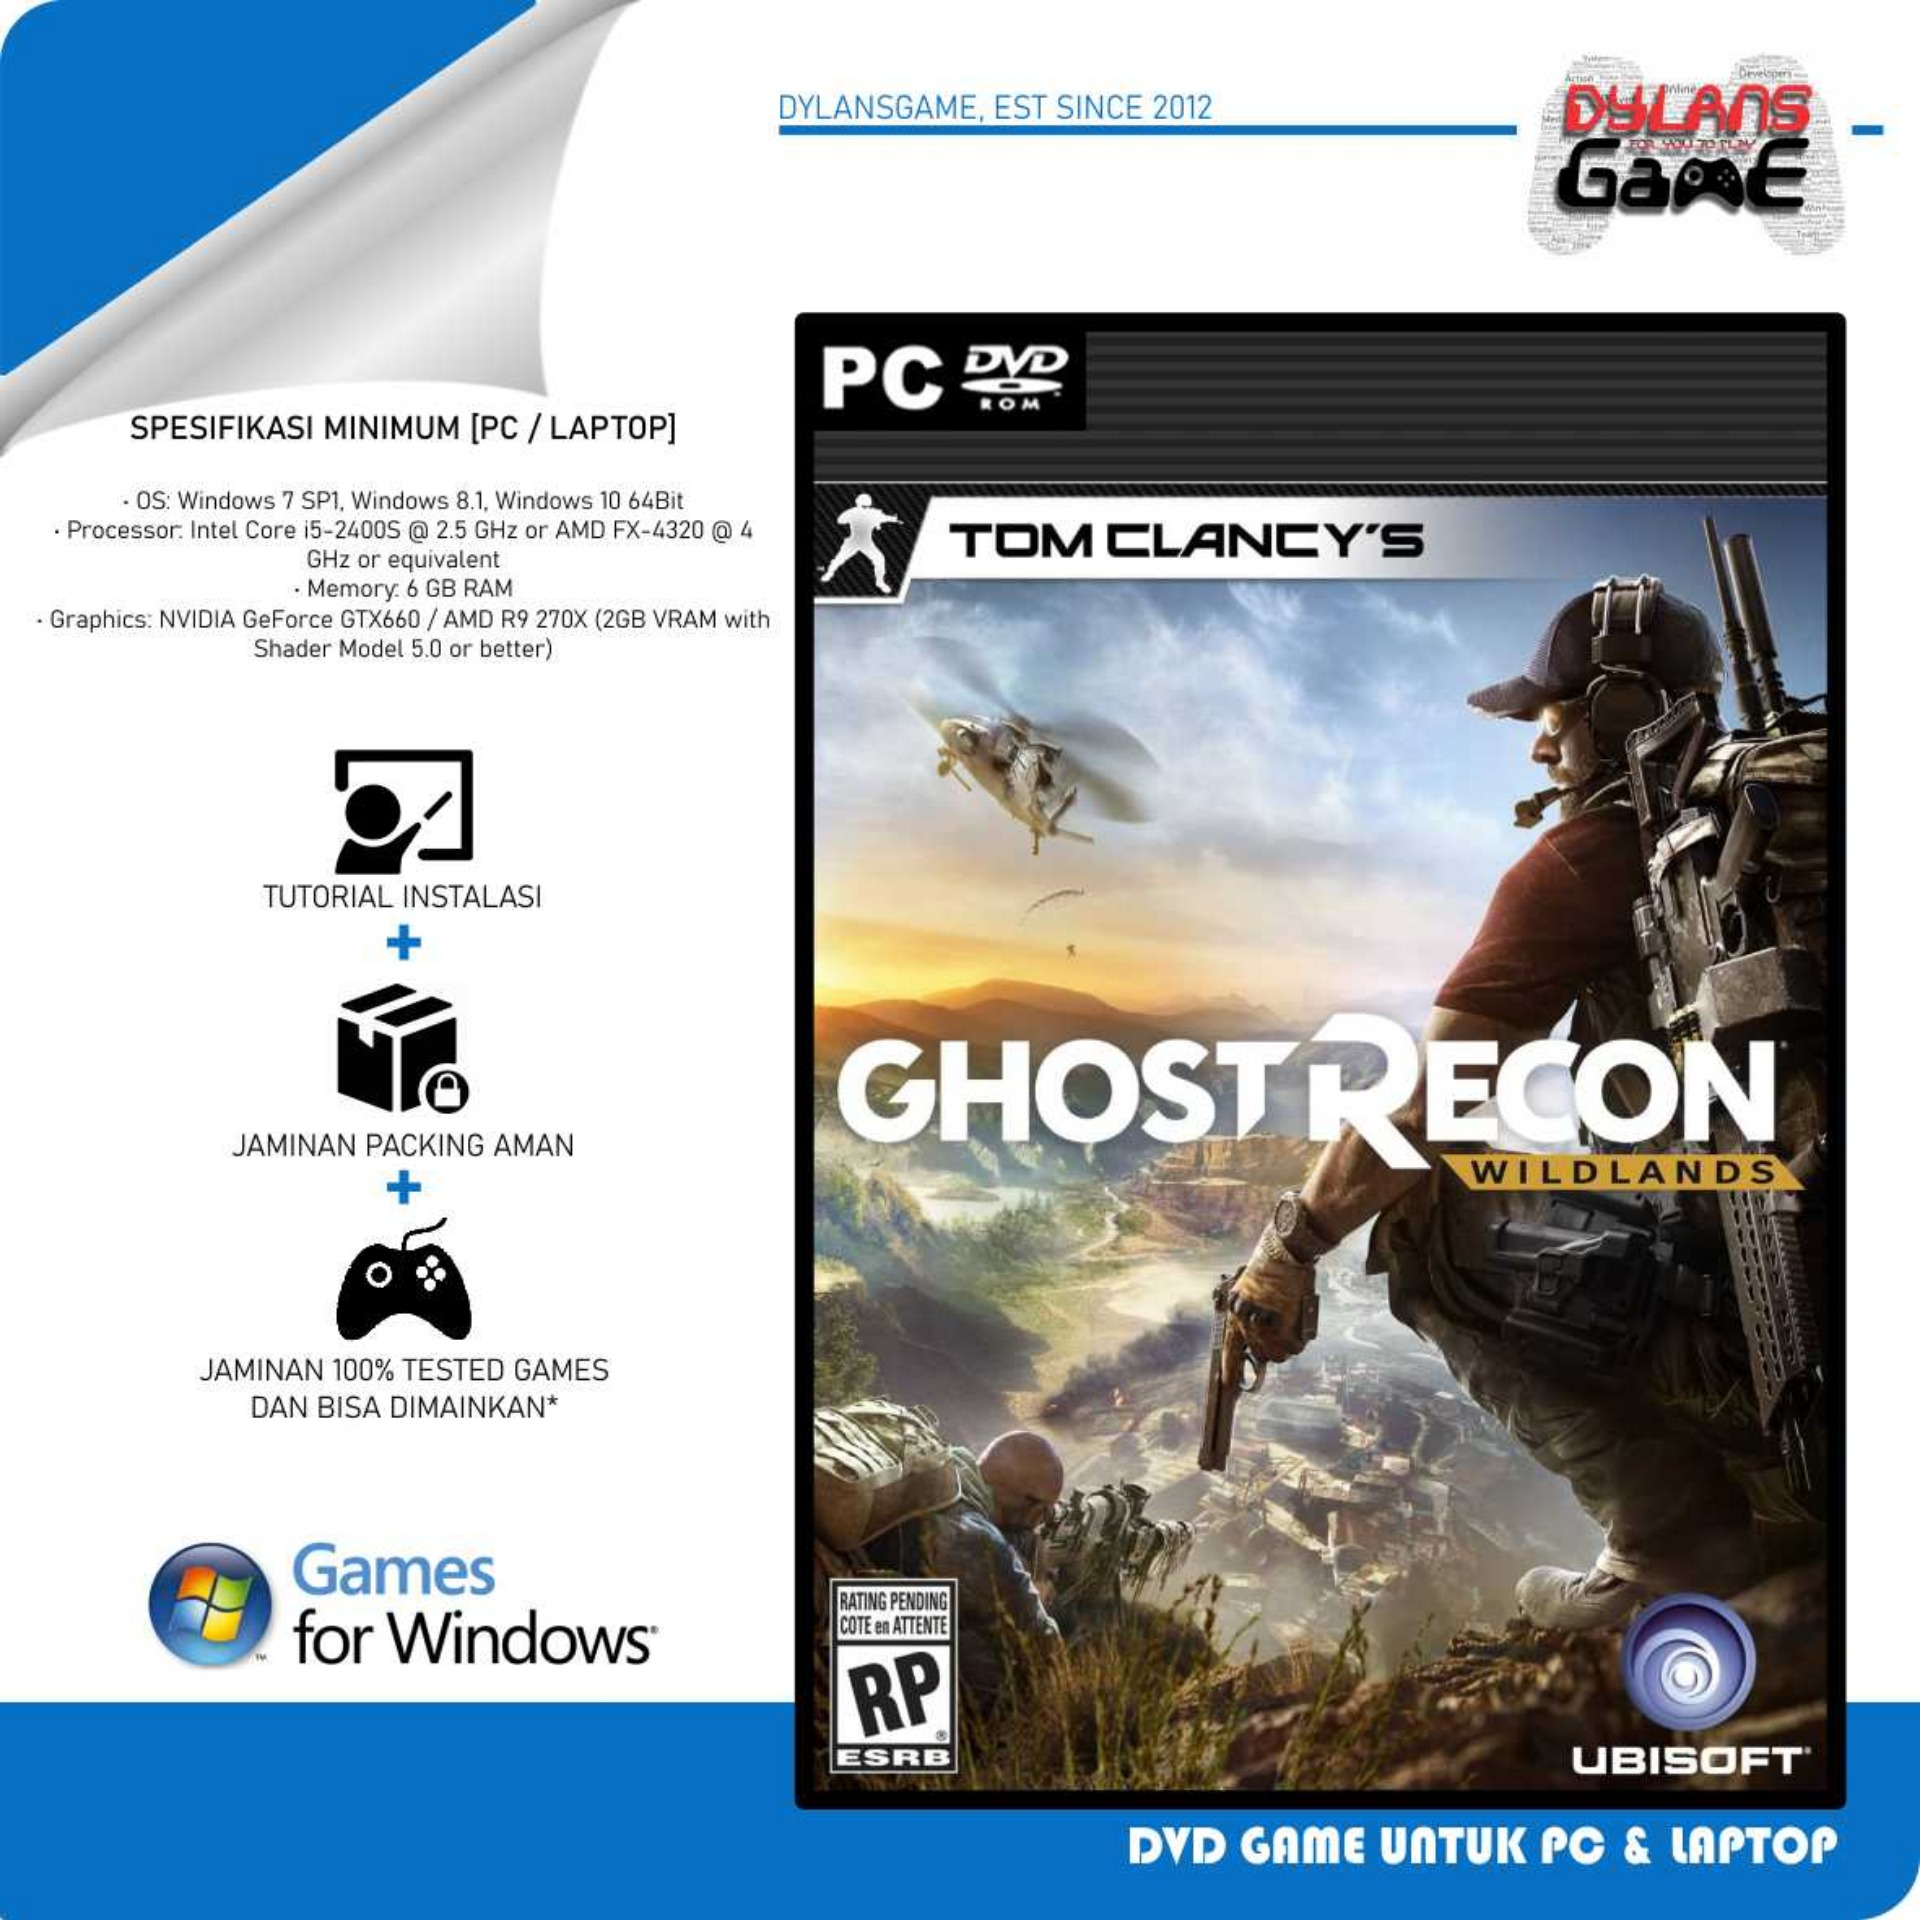 https://www.lazada.co.id/products/tom-clancys-ghost-recon-wildlands-pc-game-dvd-game-pc-laptop-i334958299-s344494127.html